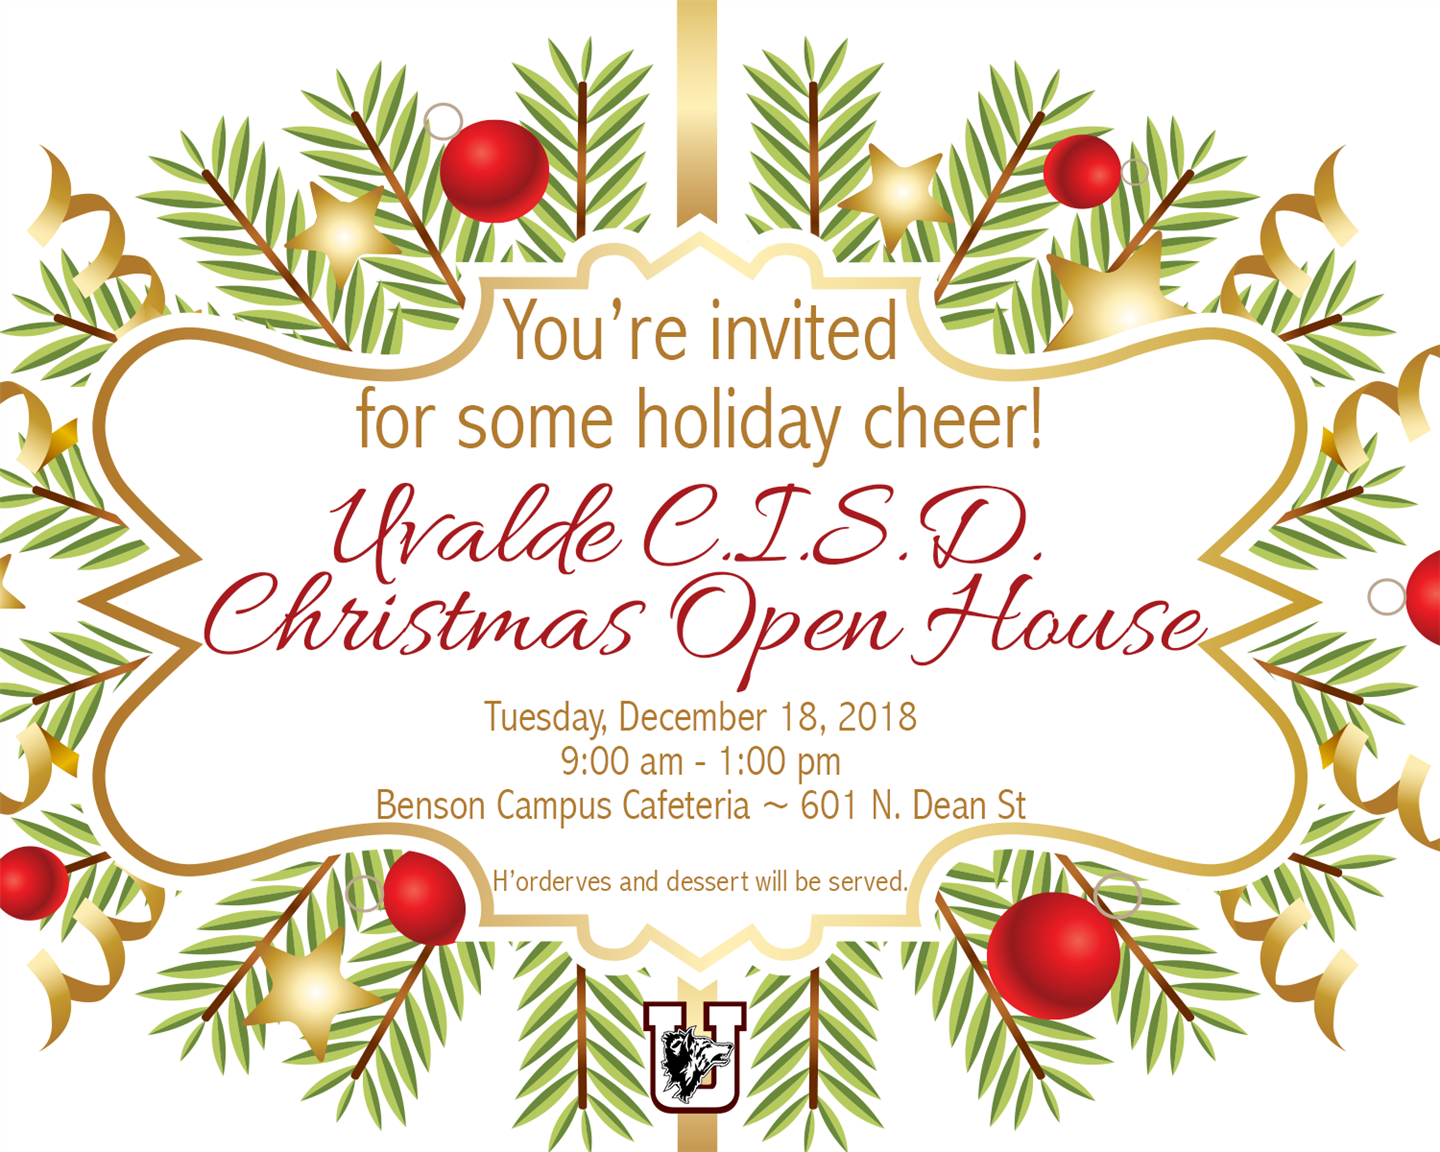 Uvalde CISD Christmas Open House...Dec. 18th!